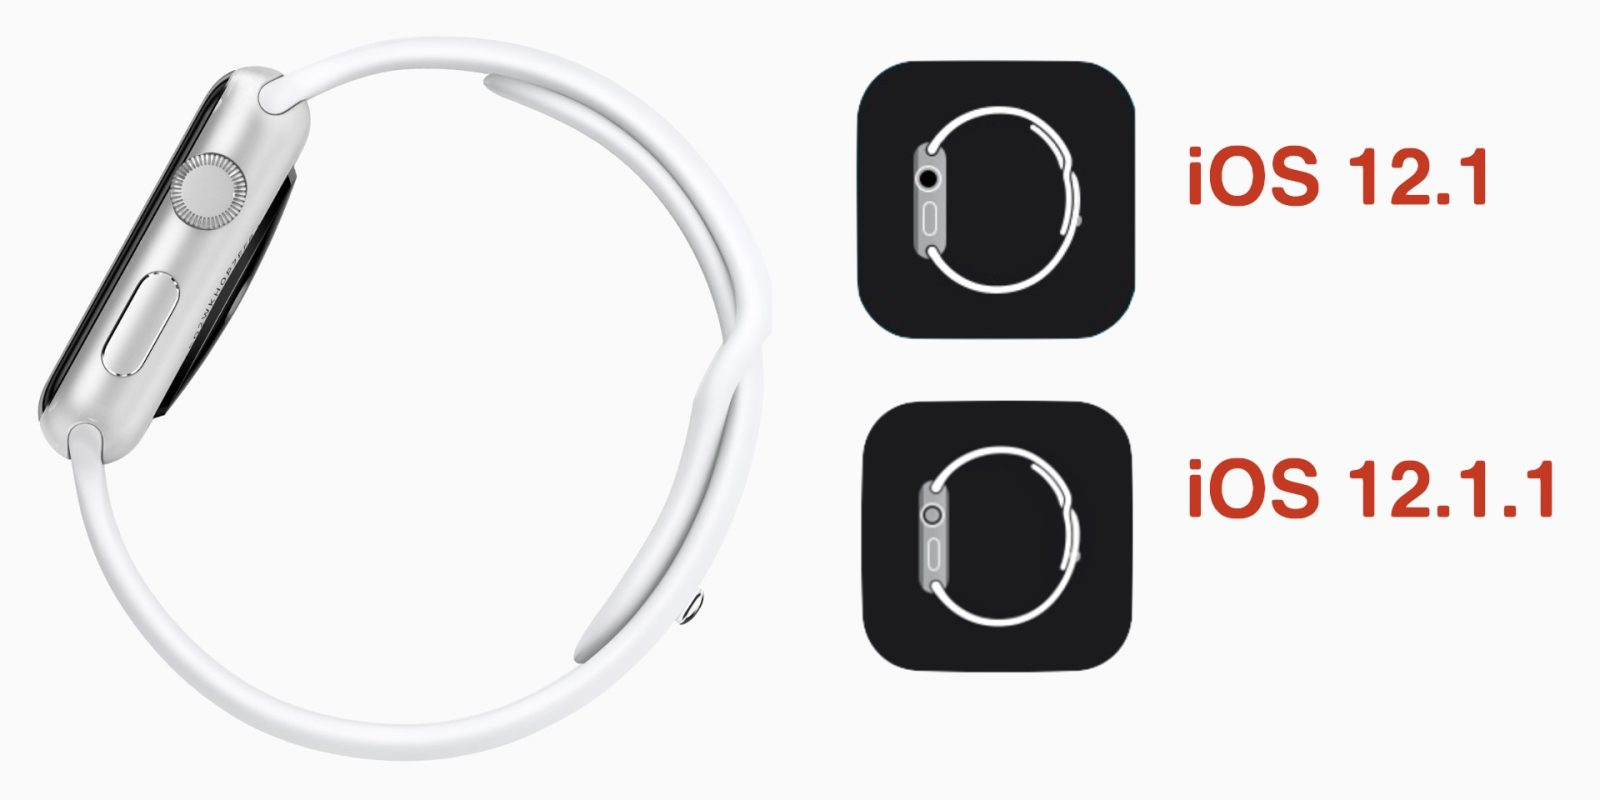 Apple Watch App Icon Upgraded from Original Model to Series 4 in iOS 12.1.1